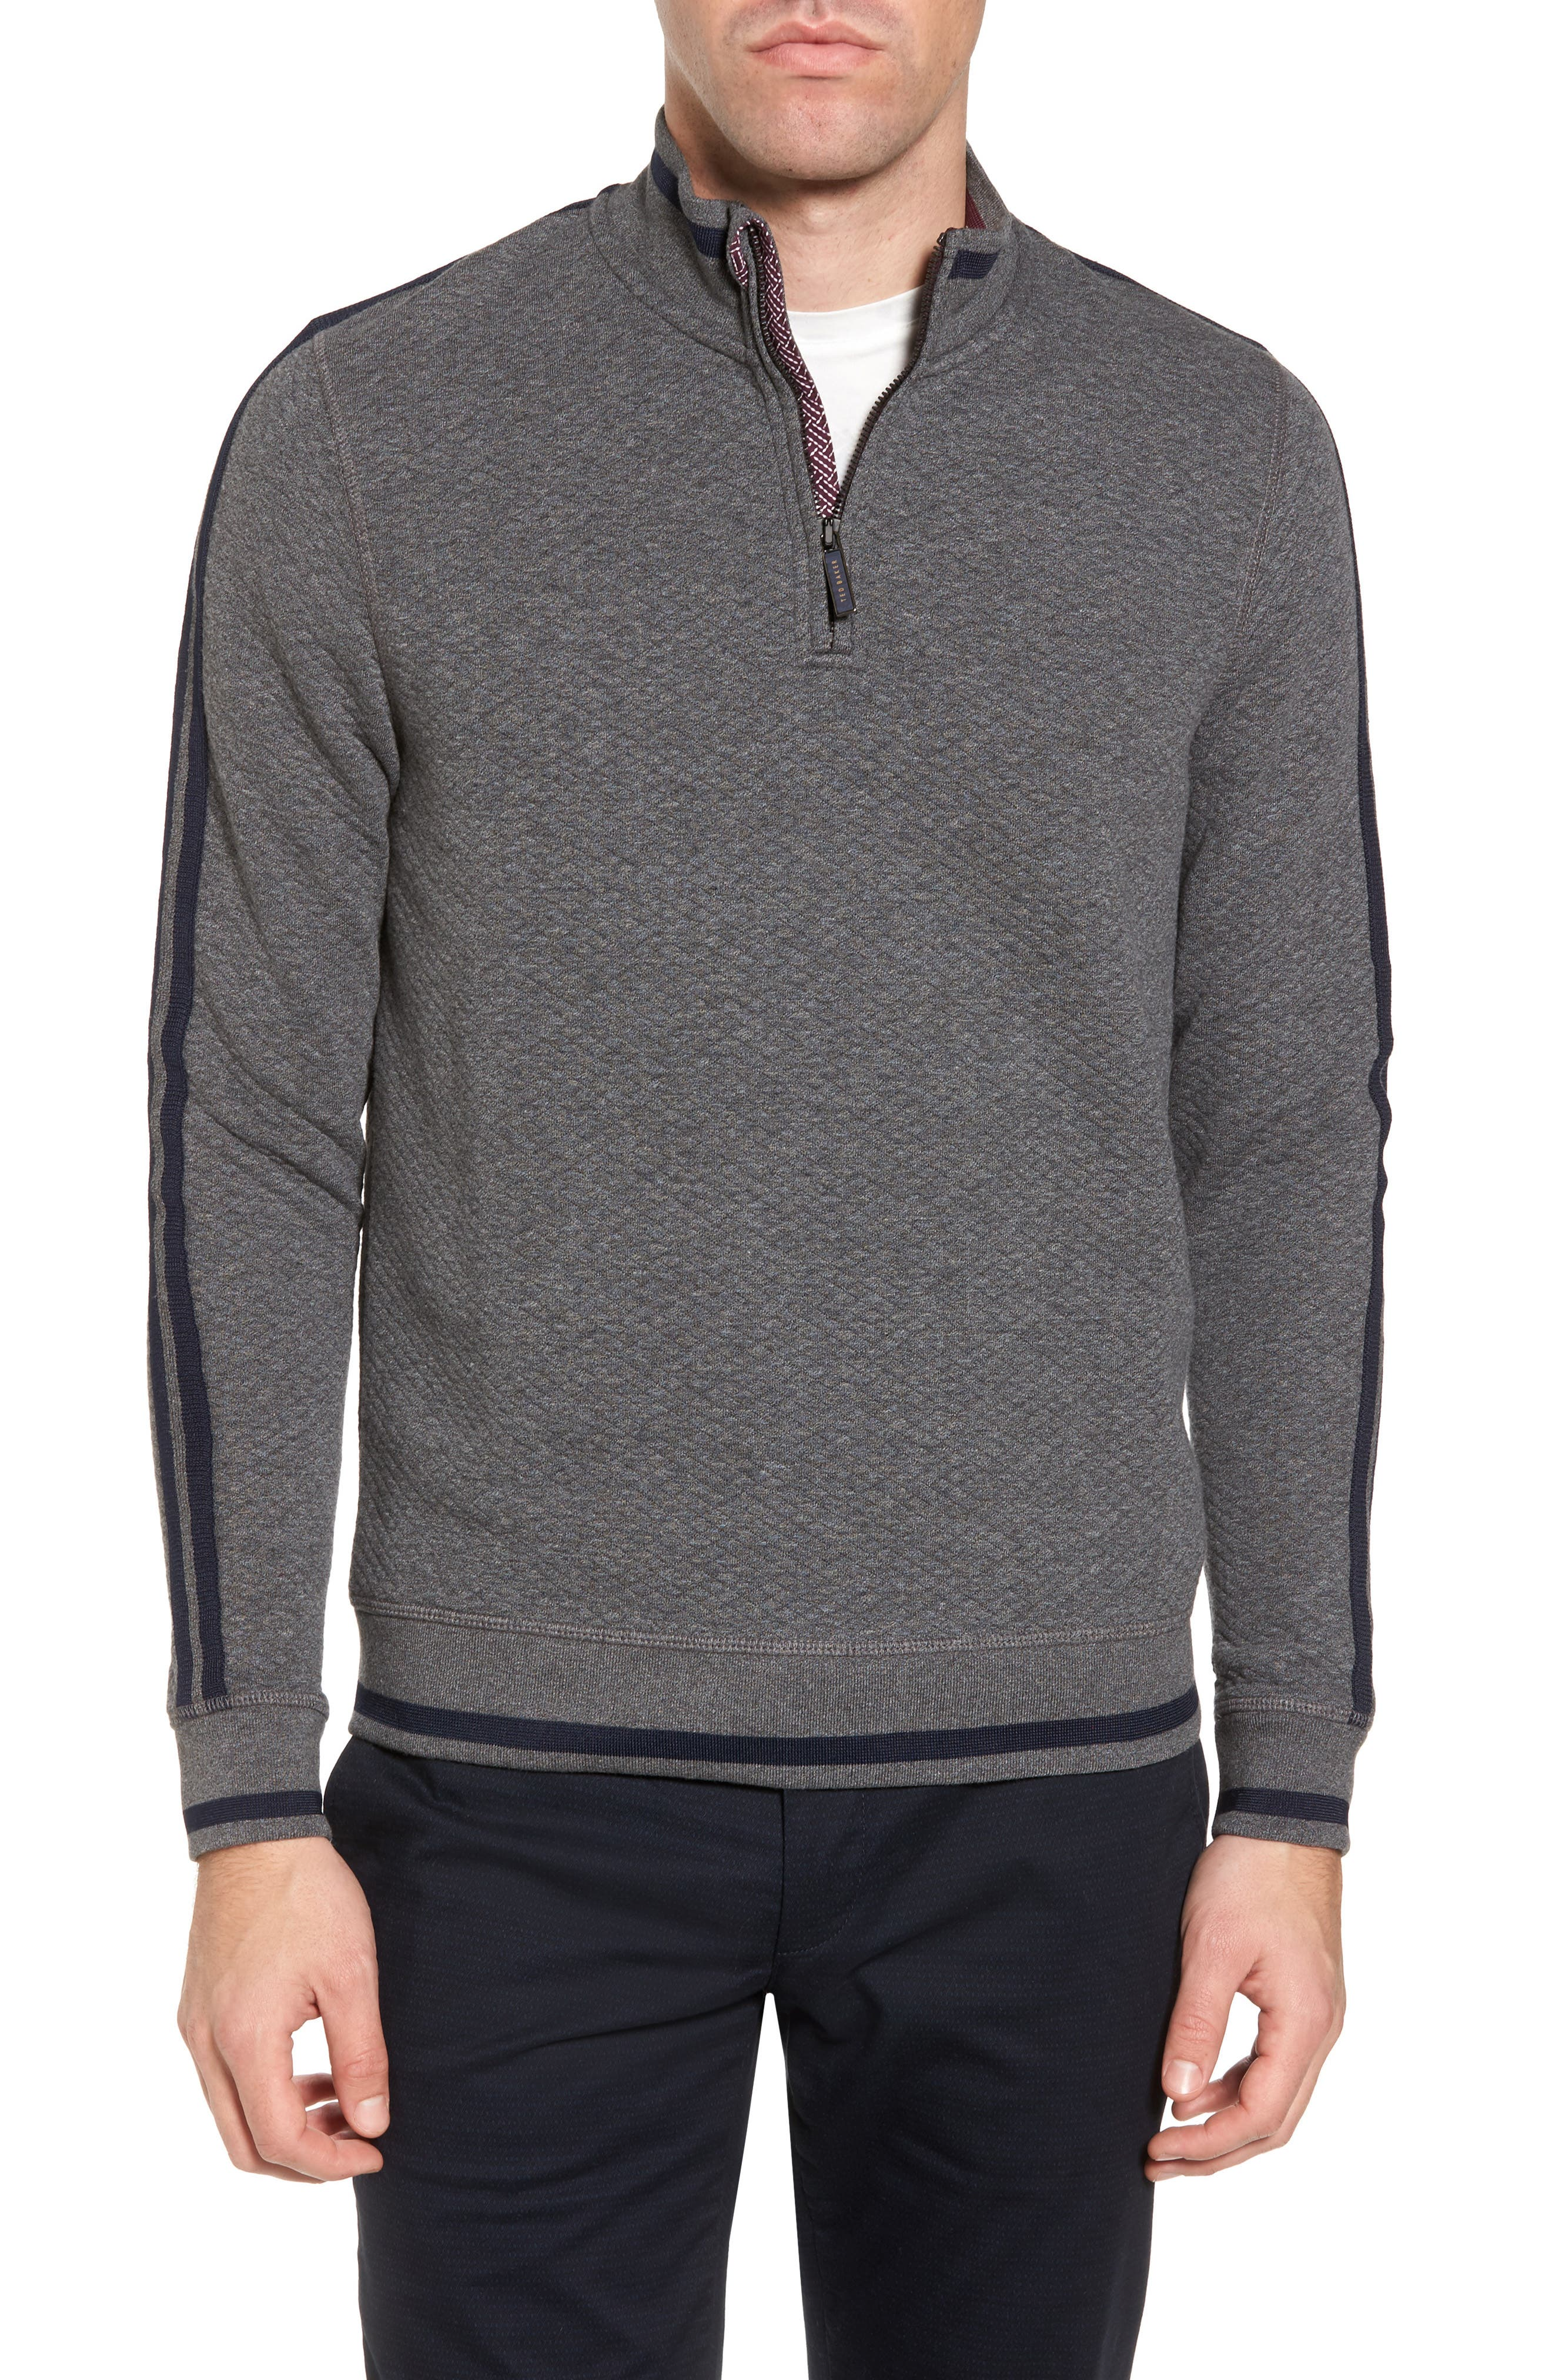 Sidney Quilted Quarter Zip Sweatshirt,                         Main,                         color, 010